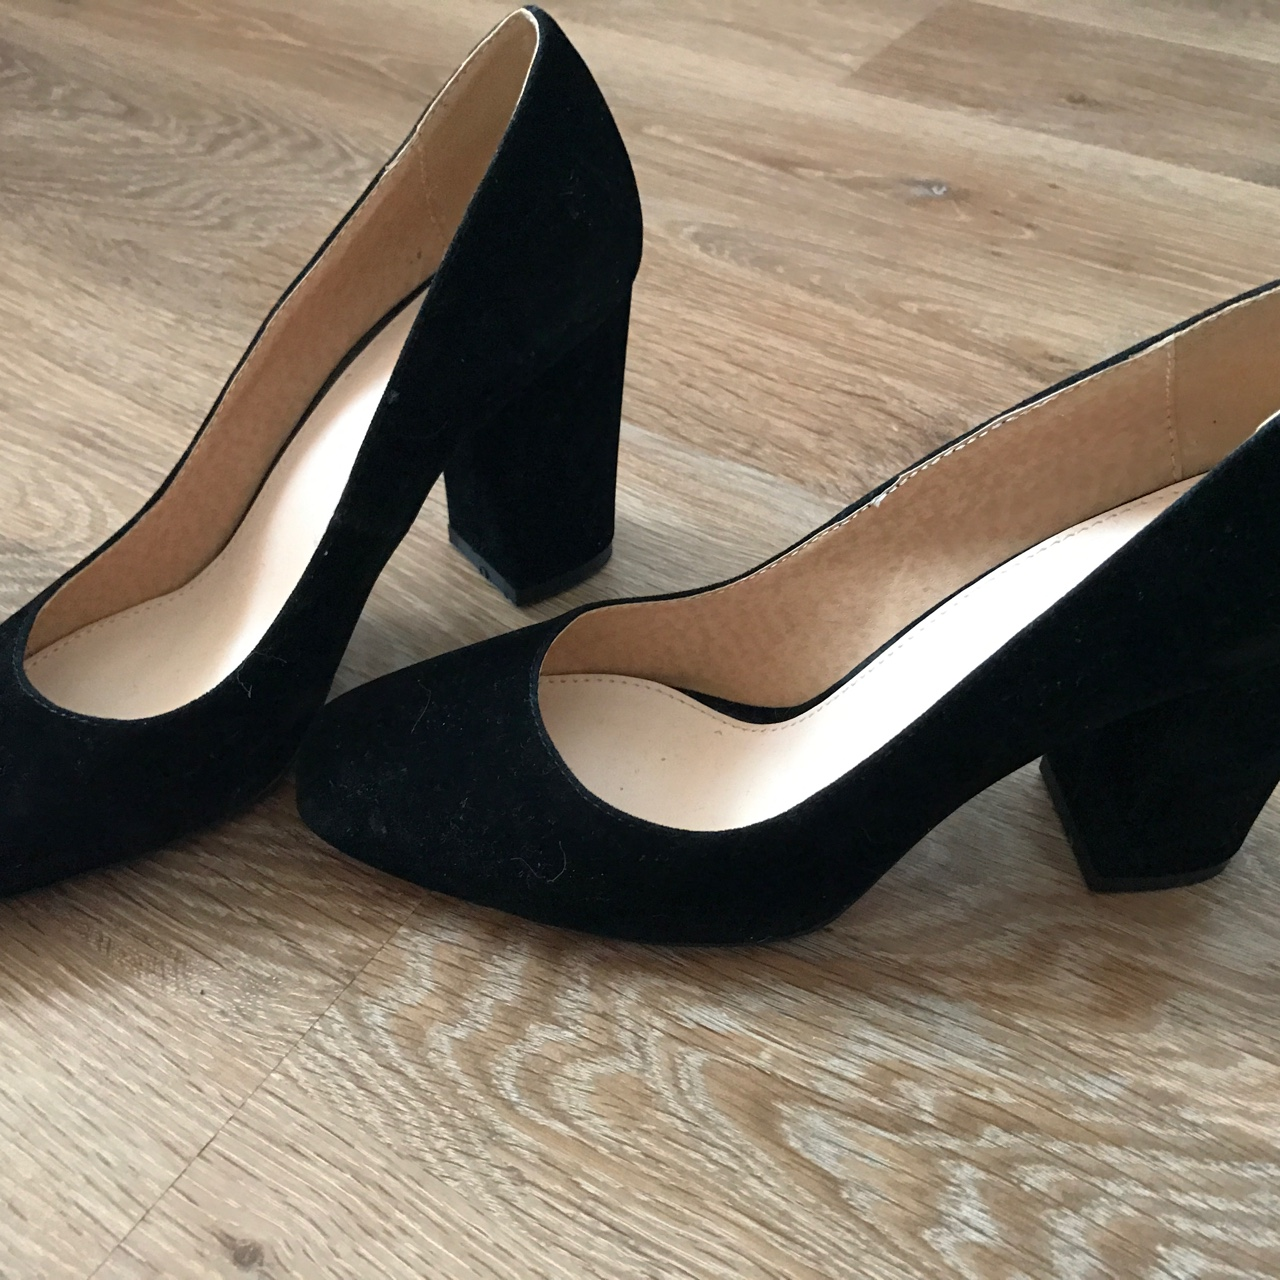 dcb12222668 Gorgeous 3 inch block heel black heels by 'RAID'... - Depop